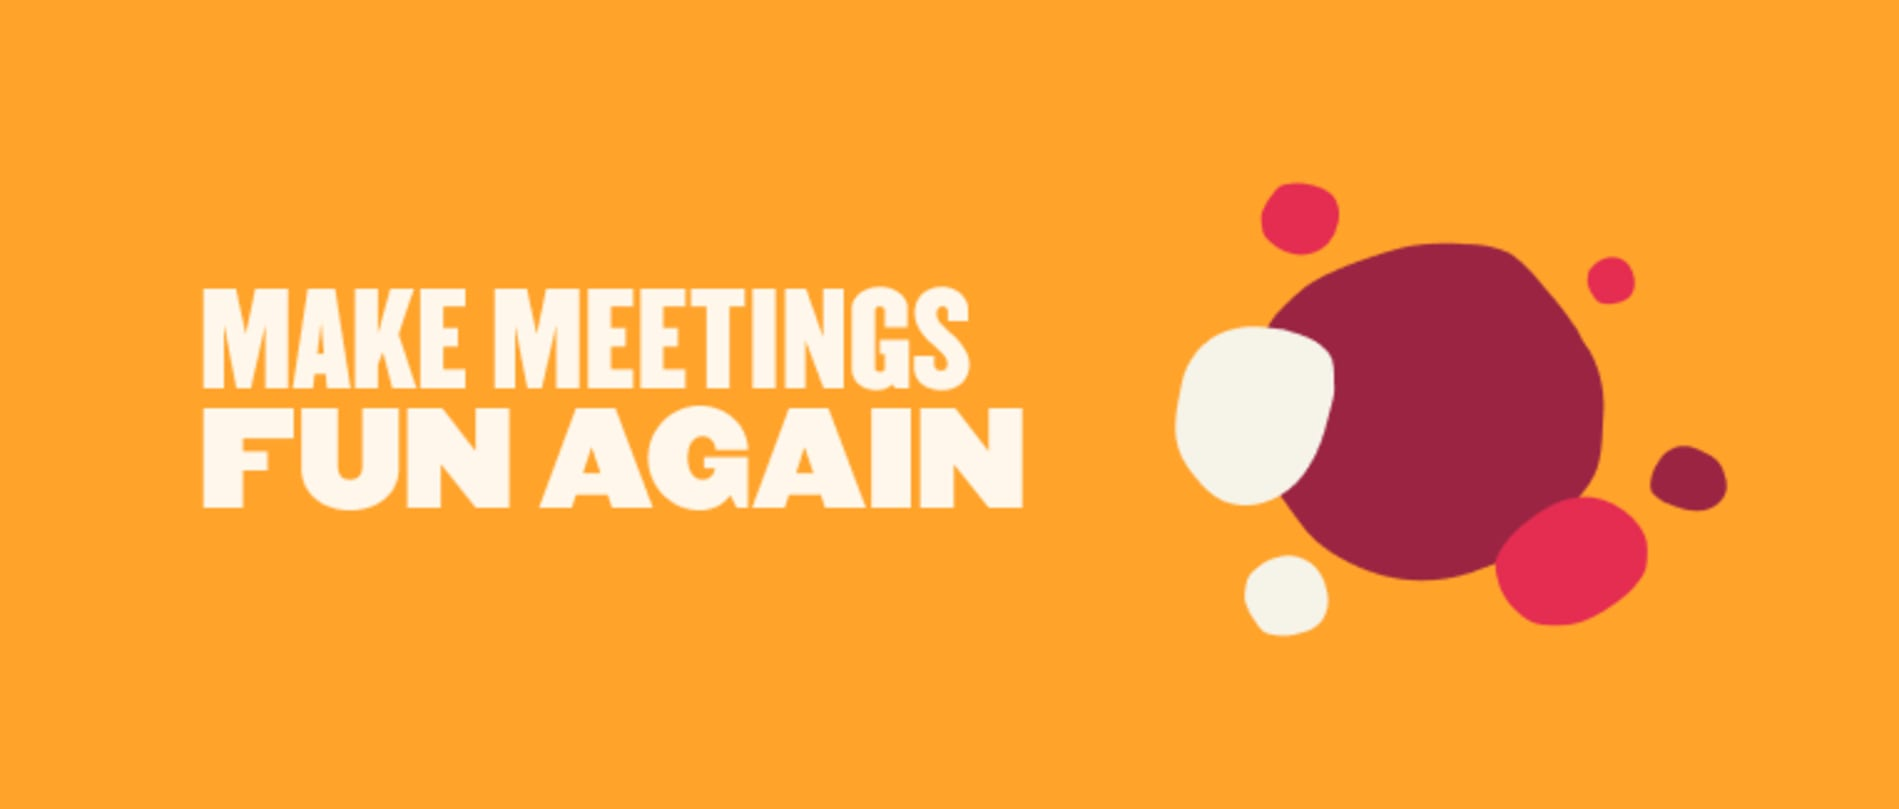 How to create a more effective meeting culture using agendas (plus templates!) - Make-meetings-fun-again-Blog-post.png